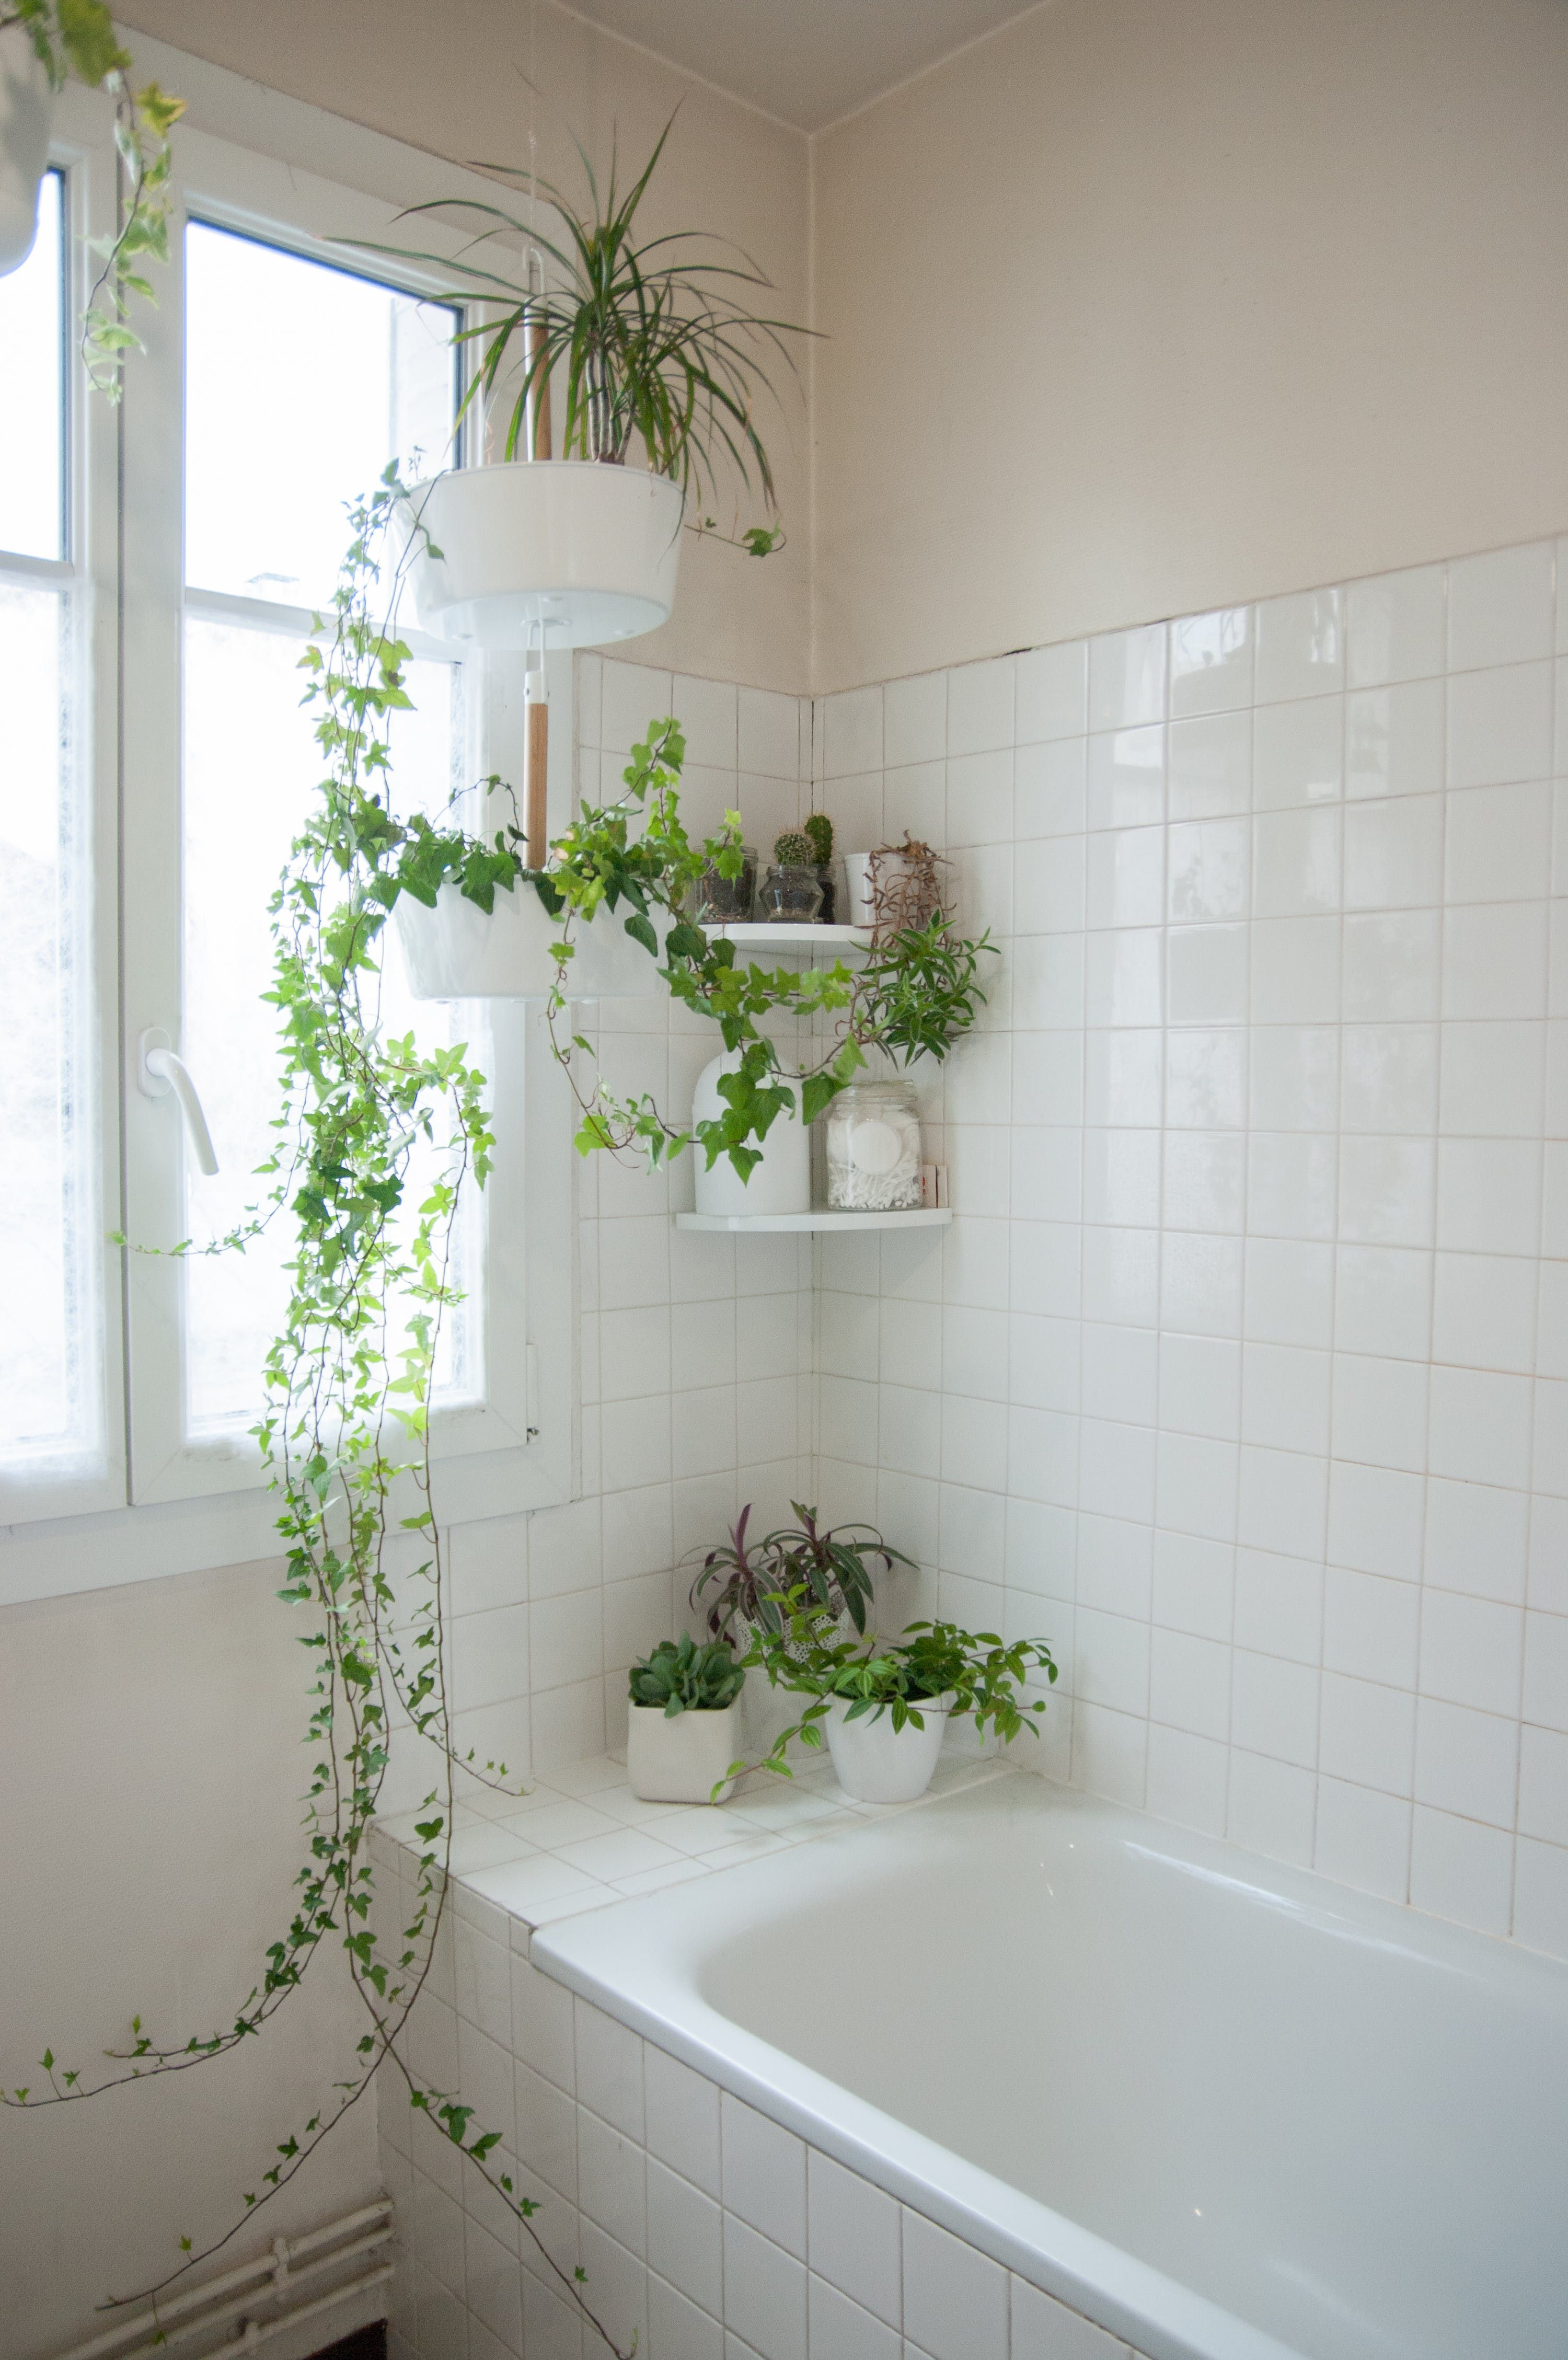 Summer Home Hack: The Houseplants That'll Change the Game -   14 plants Bathroom no light ideas